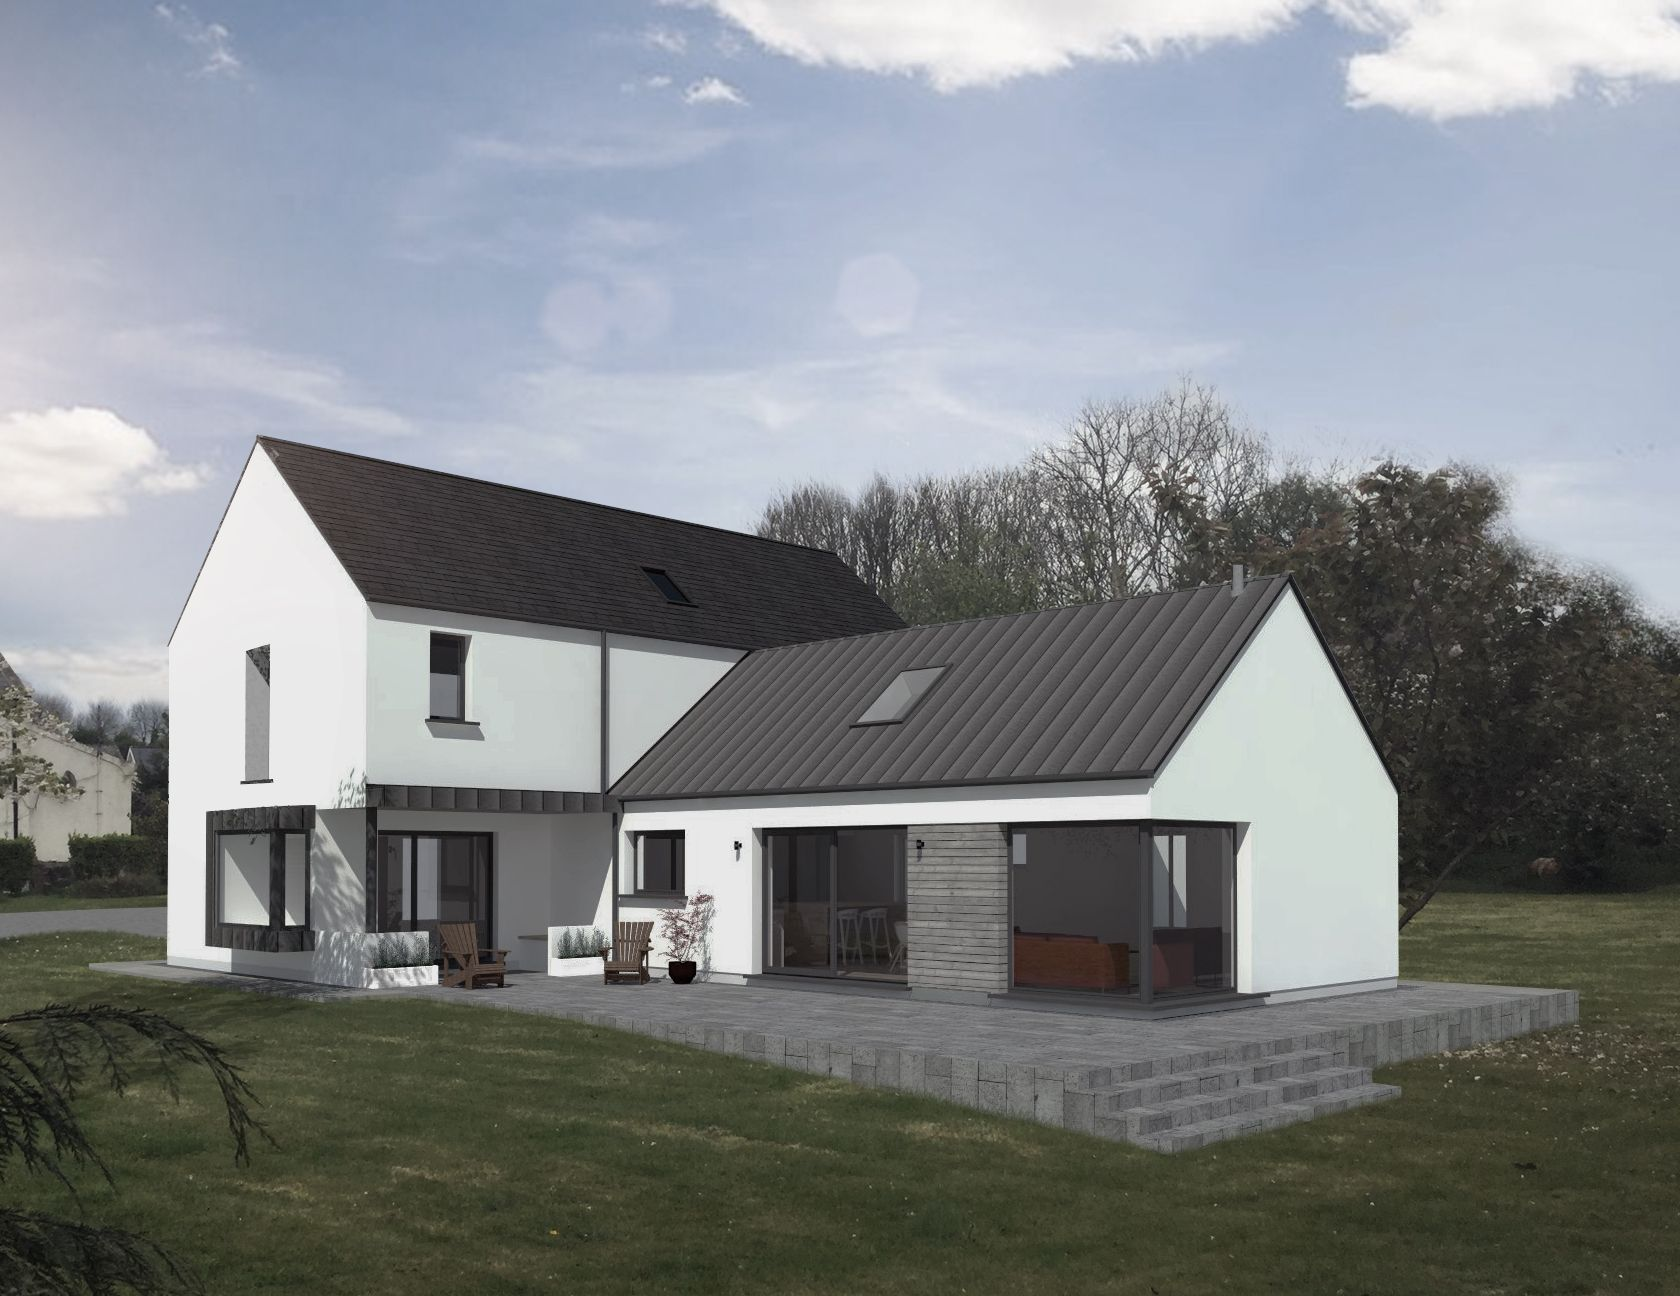 Rural house ireland homes dormer storey extensions also pin by ann collins on houses pinterest design and rh in